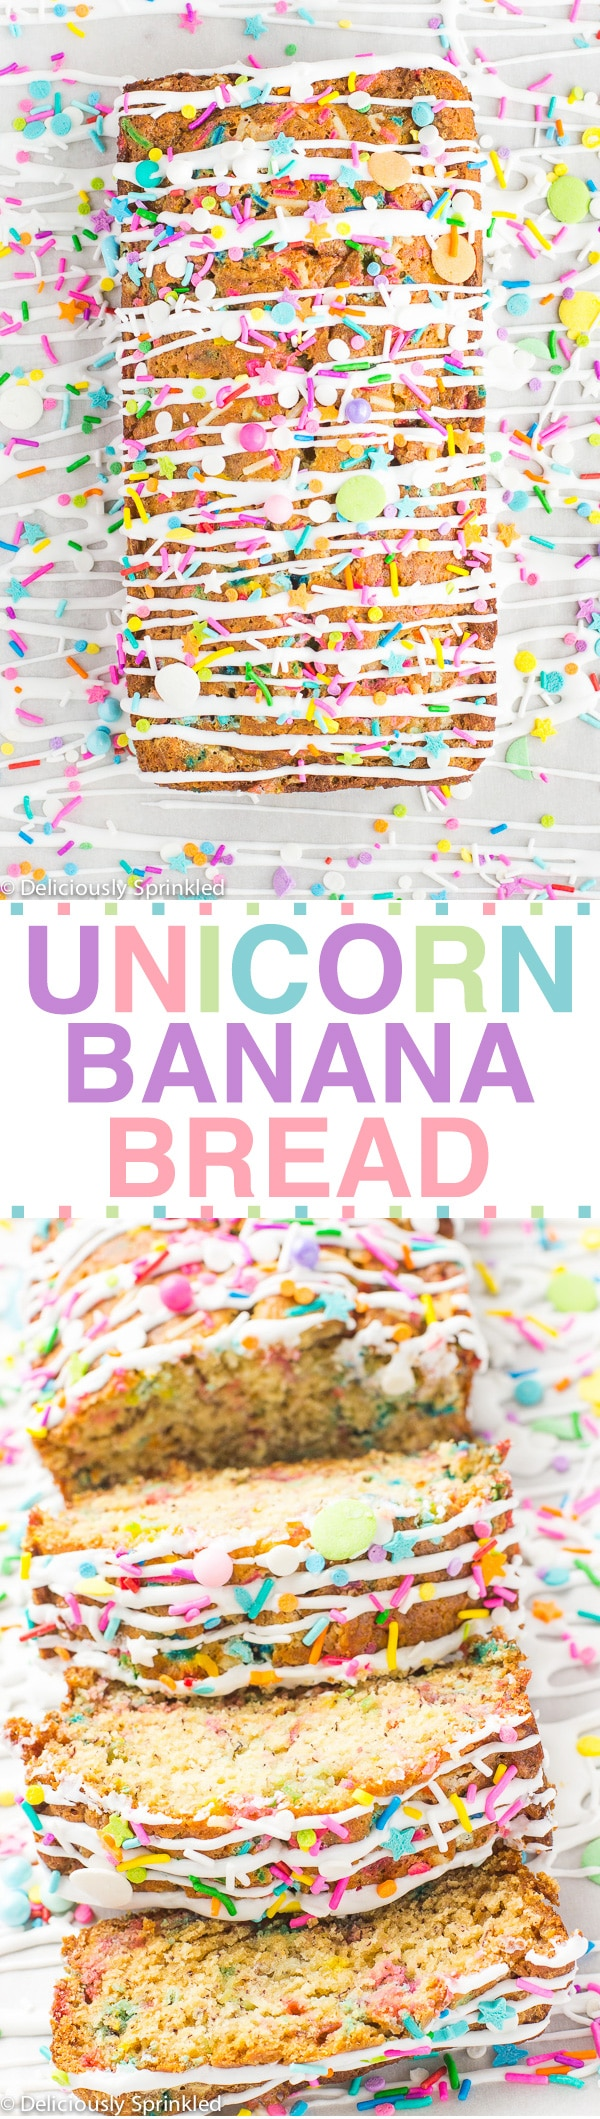 UNICORN RECIPES-BANANA BREAD